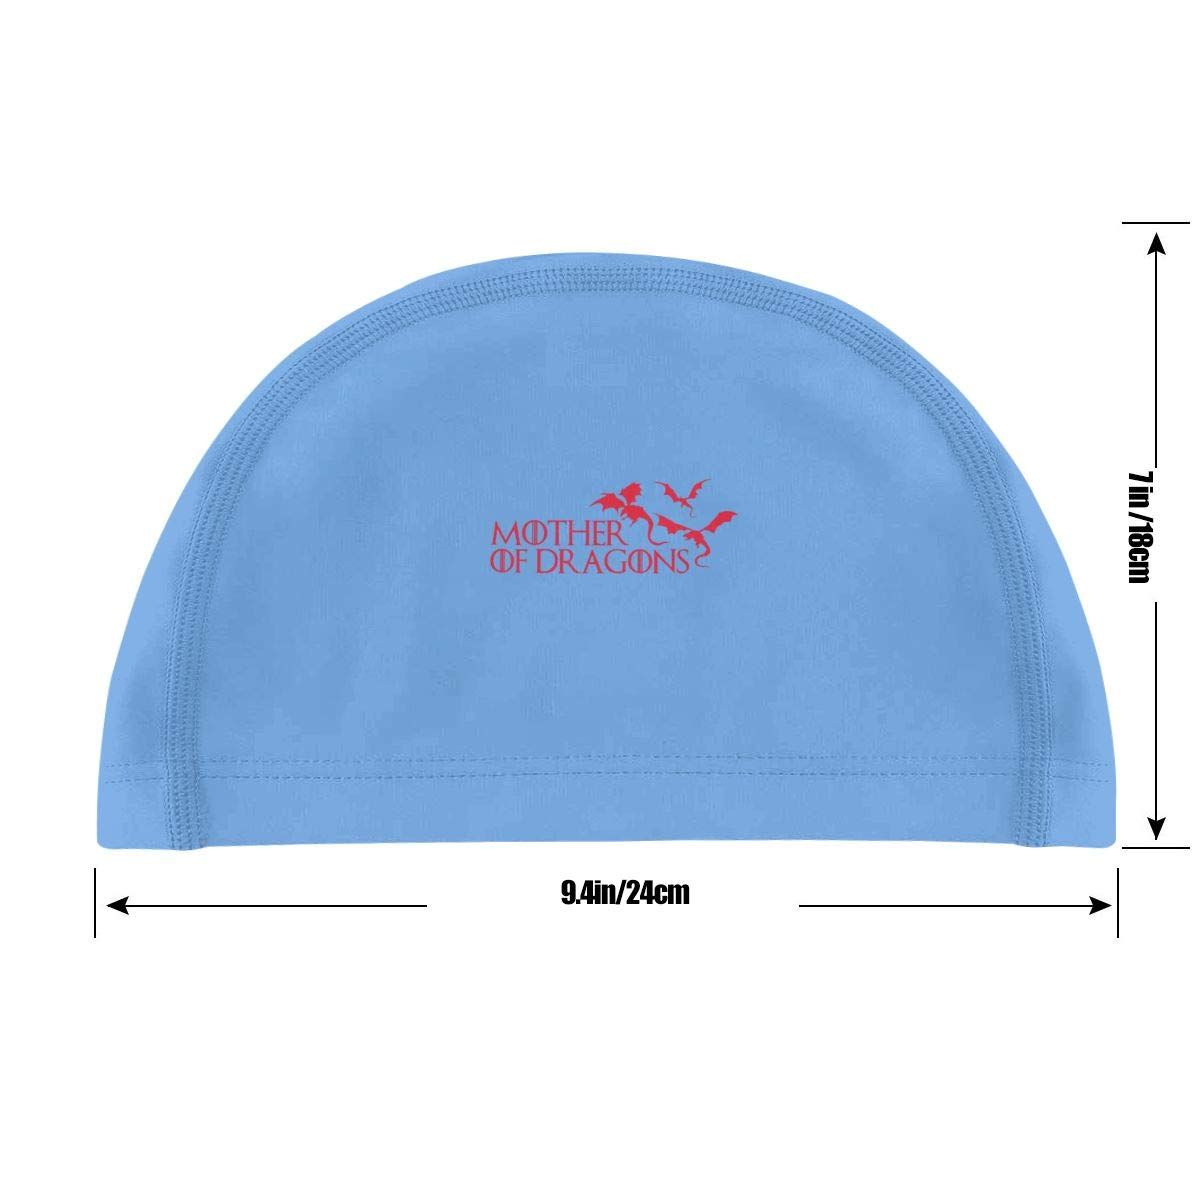 Mother of Dragons Swimming Cap Bathing Caps for Men Women